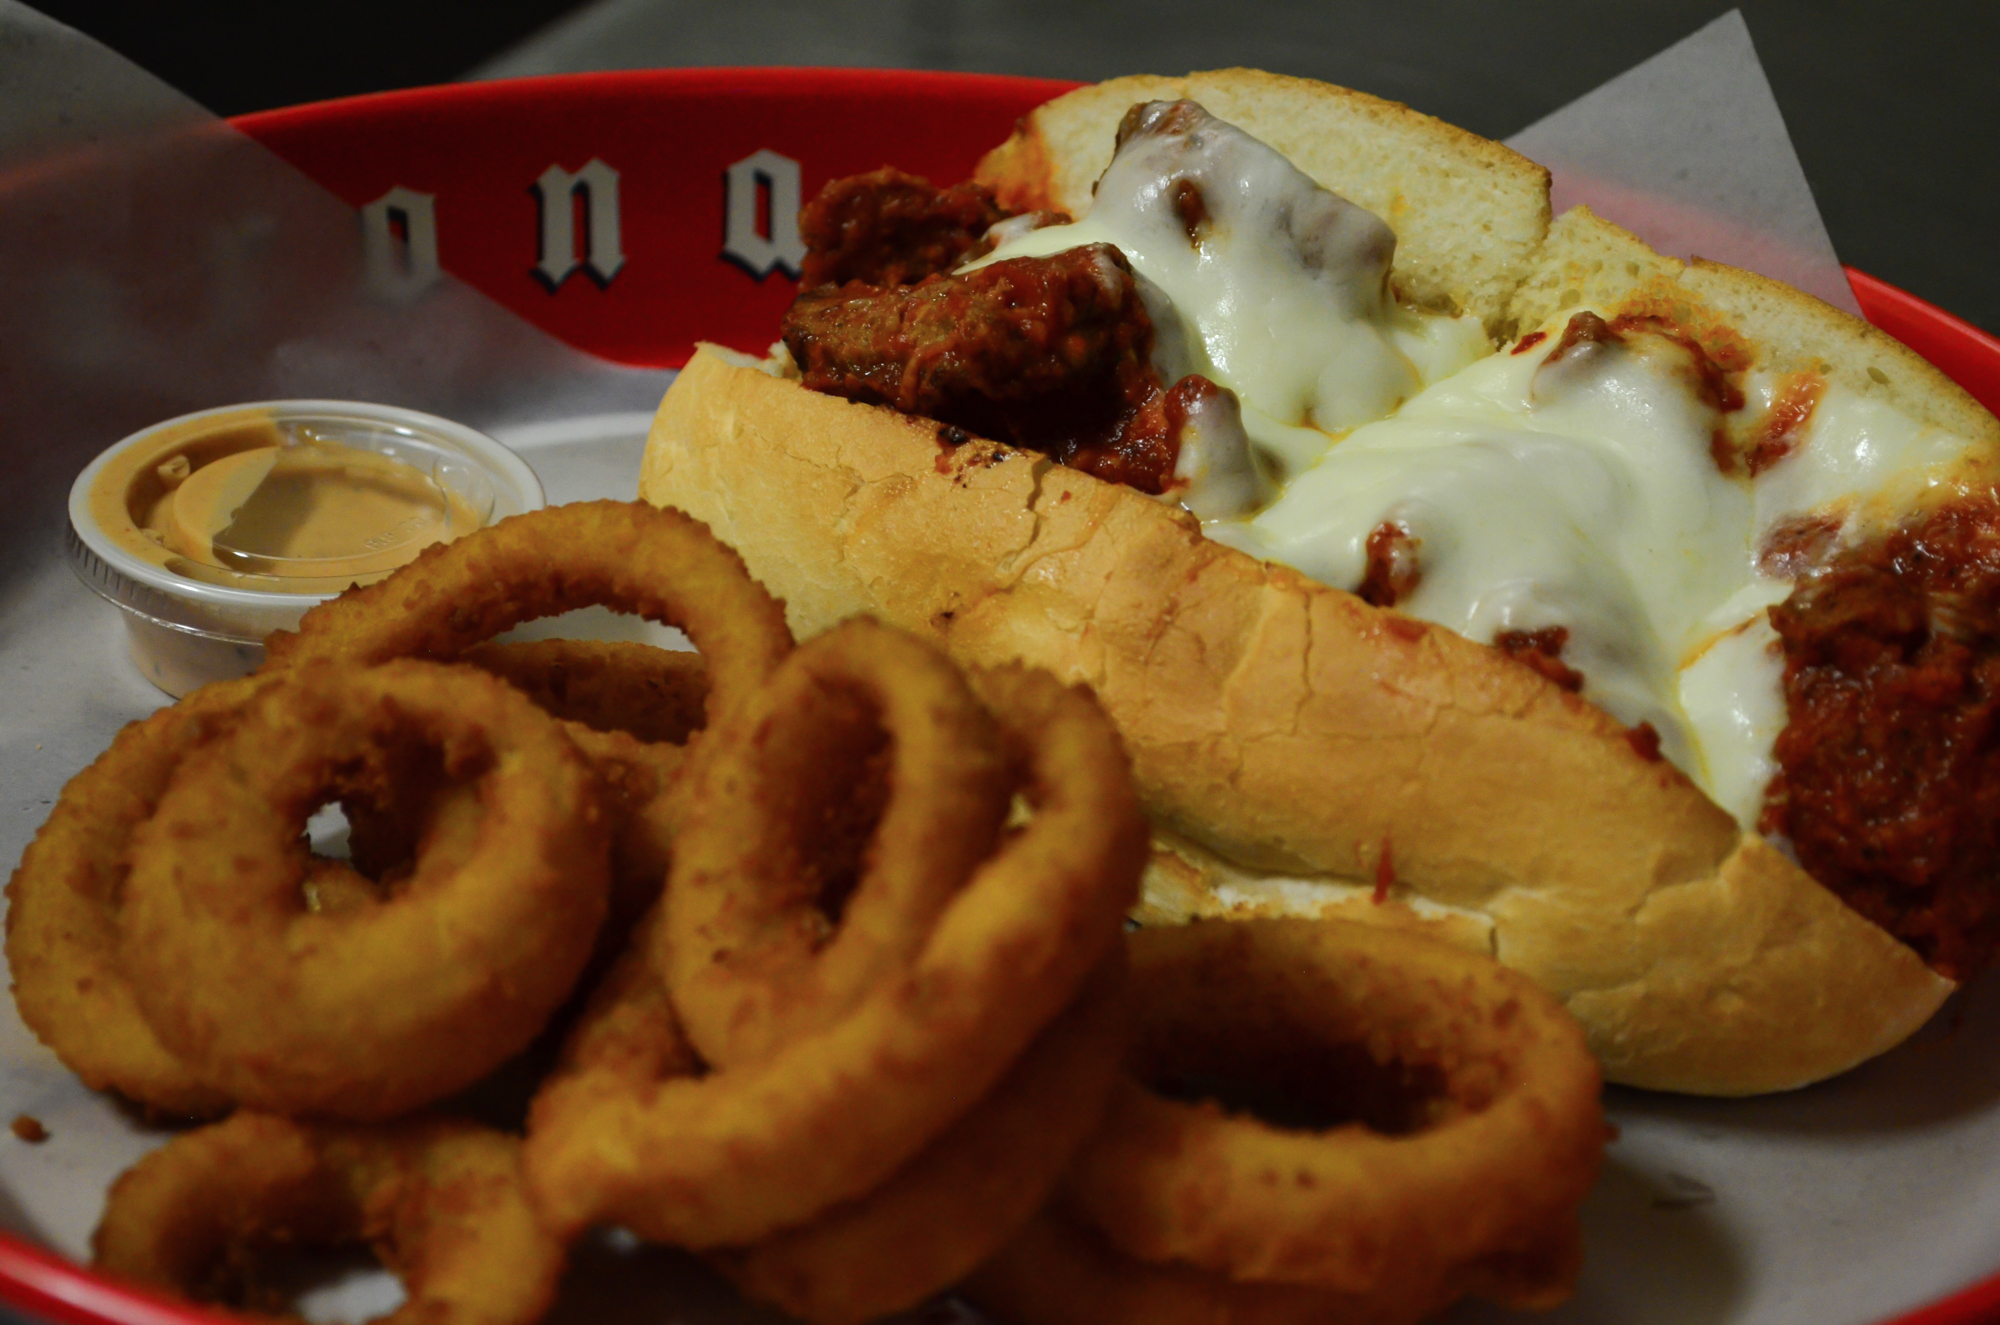 Parmesan sub with a side of onion rings.